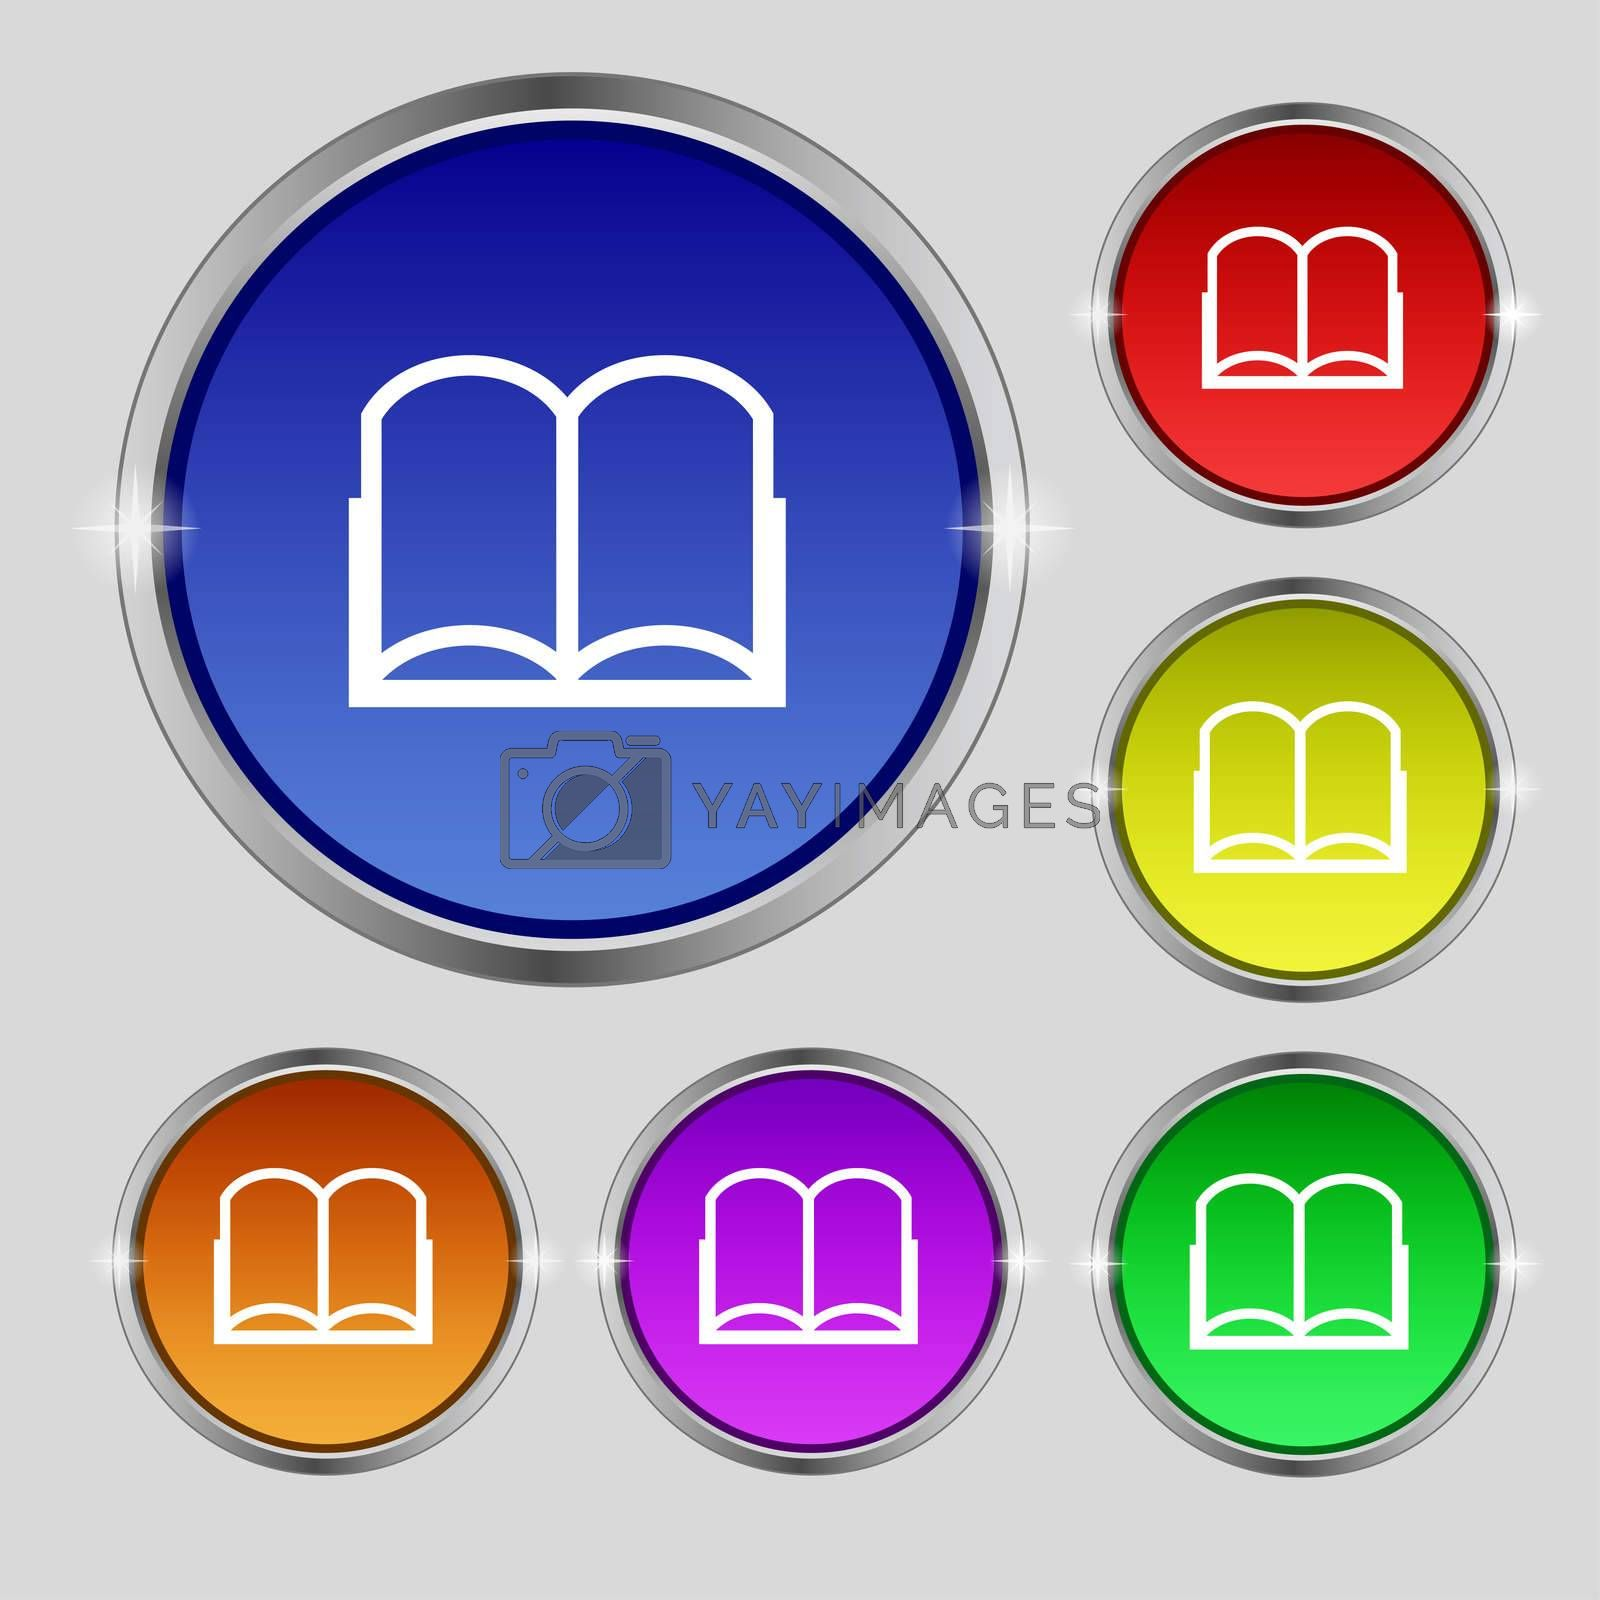 Book sign icon. Open book symbol. Set of colored buttons.  by Serhii Lohvyniuk